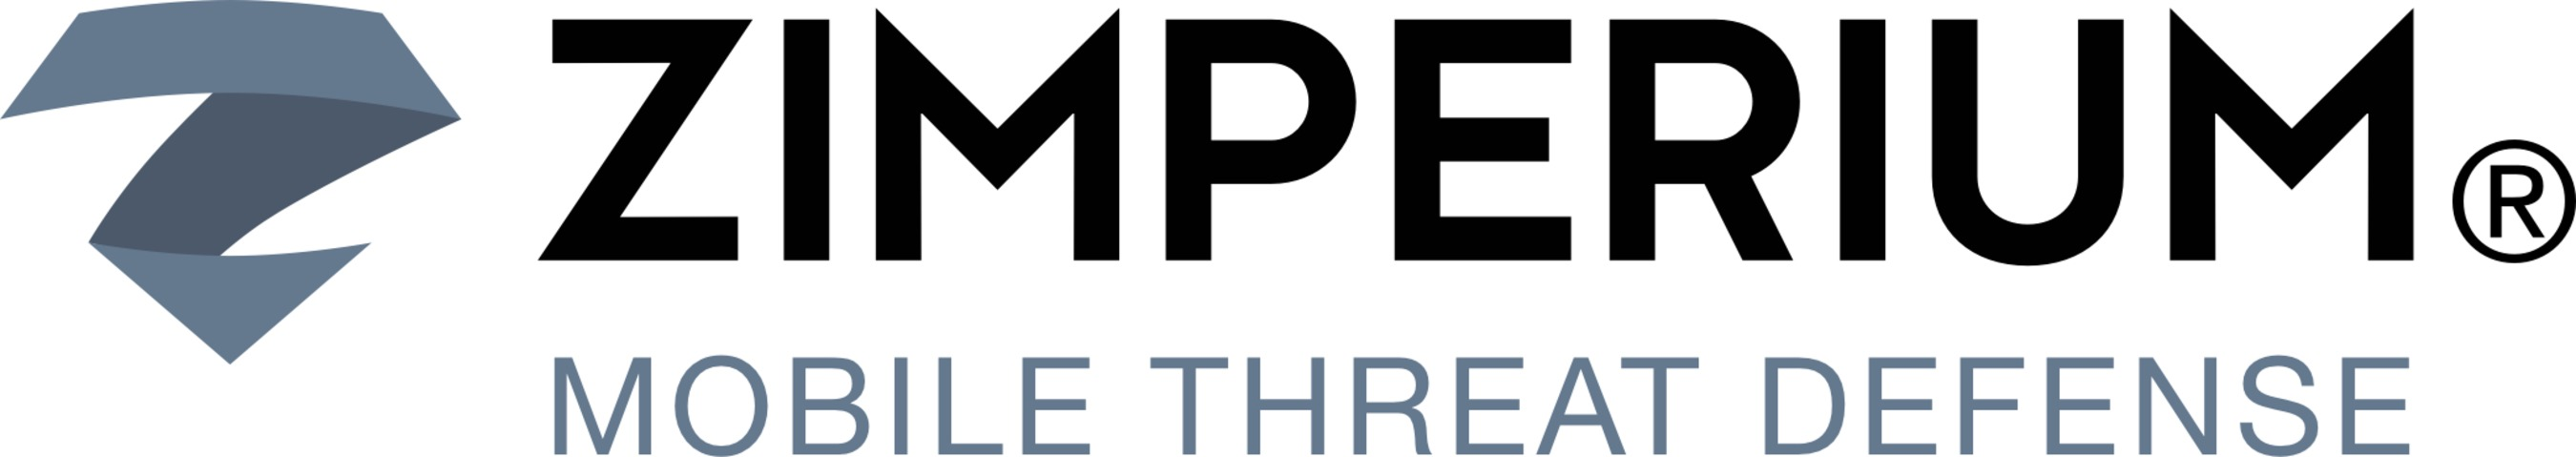 Zimperium reveals 60% of mobile devices in Enterprise BYOD environments are vulnerable to known cyberthreats